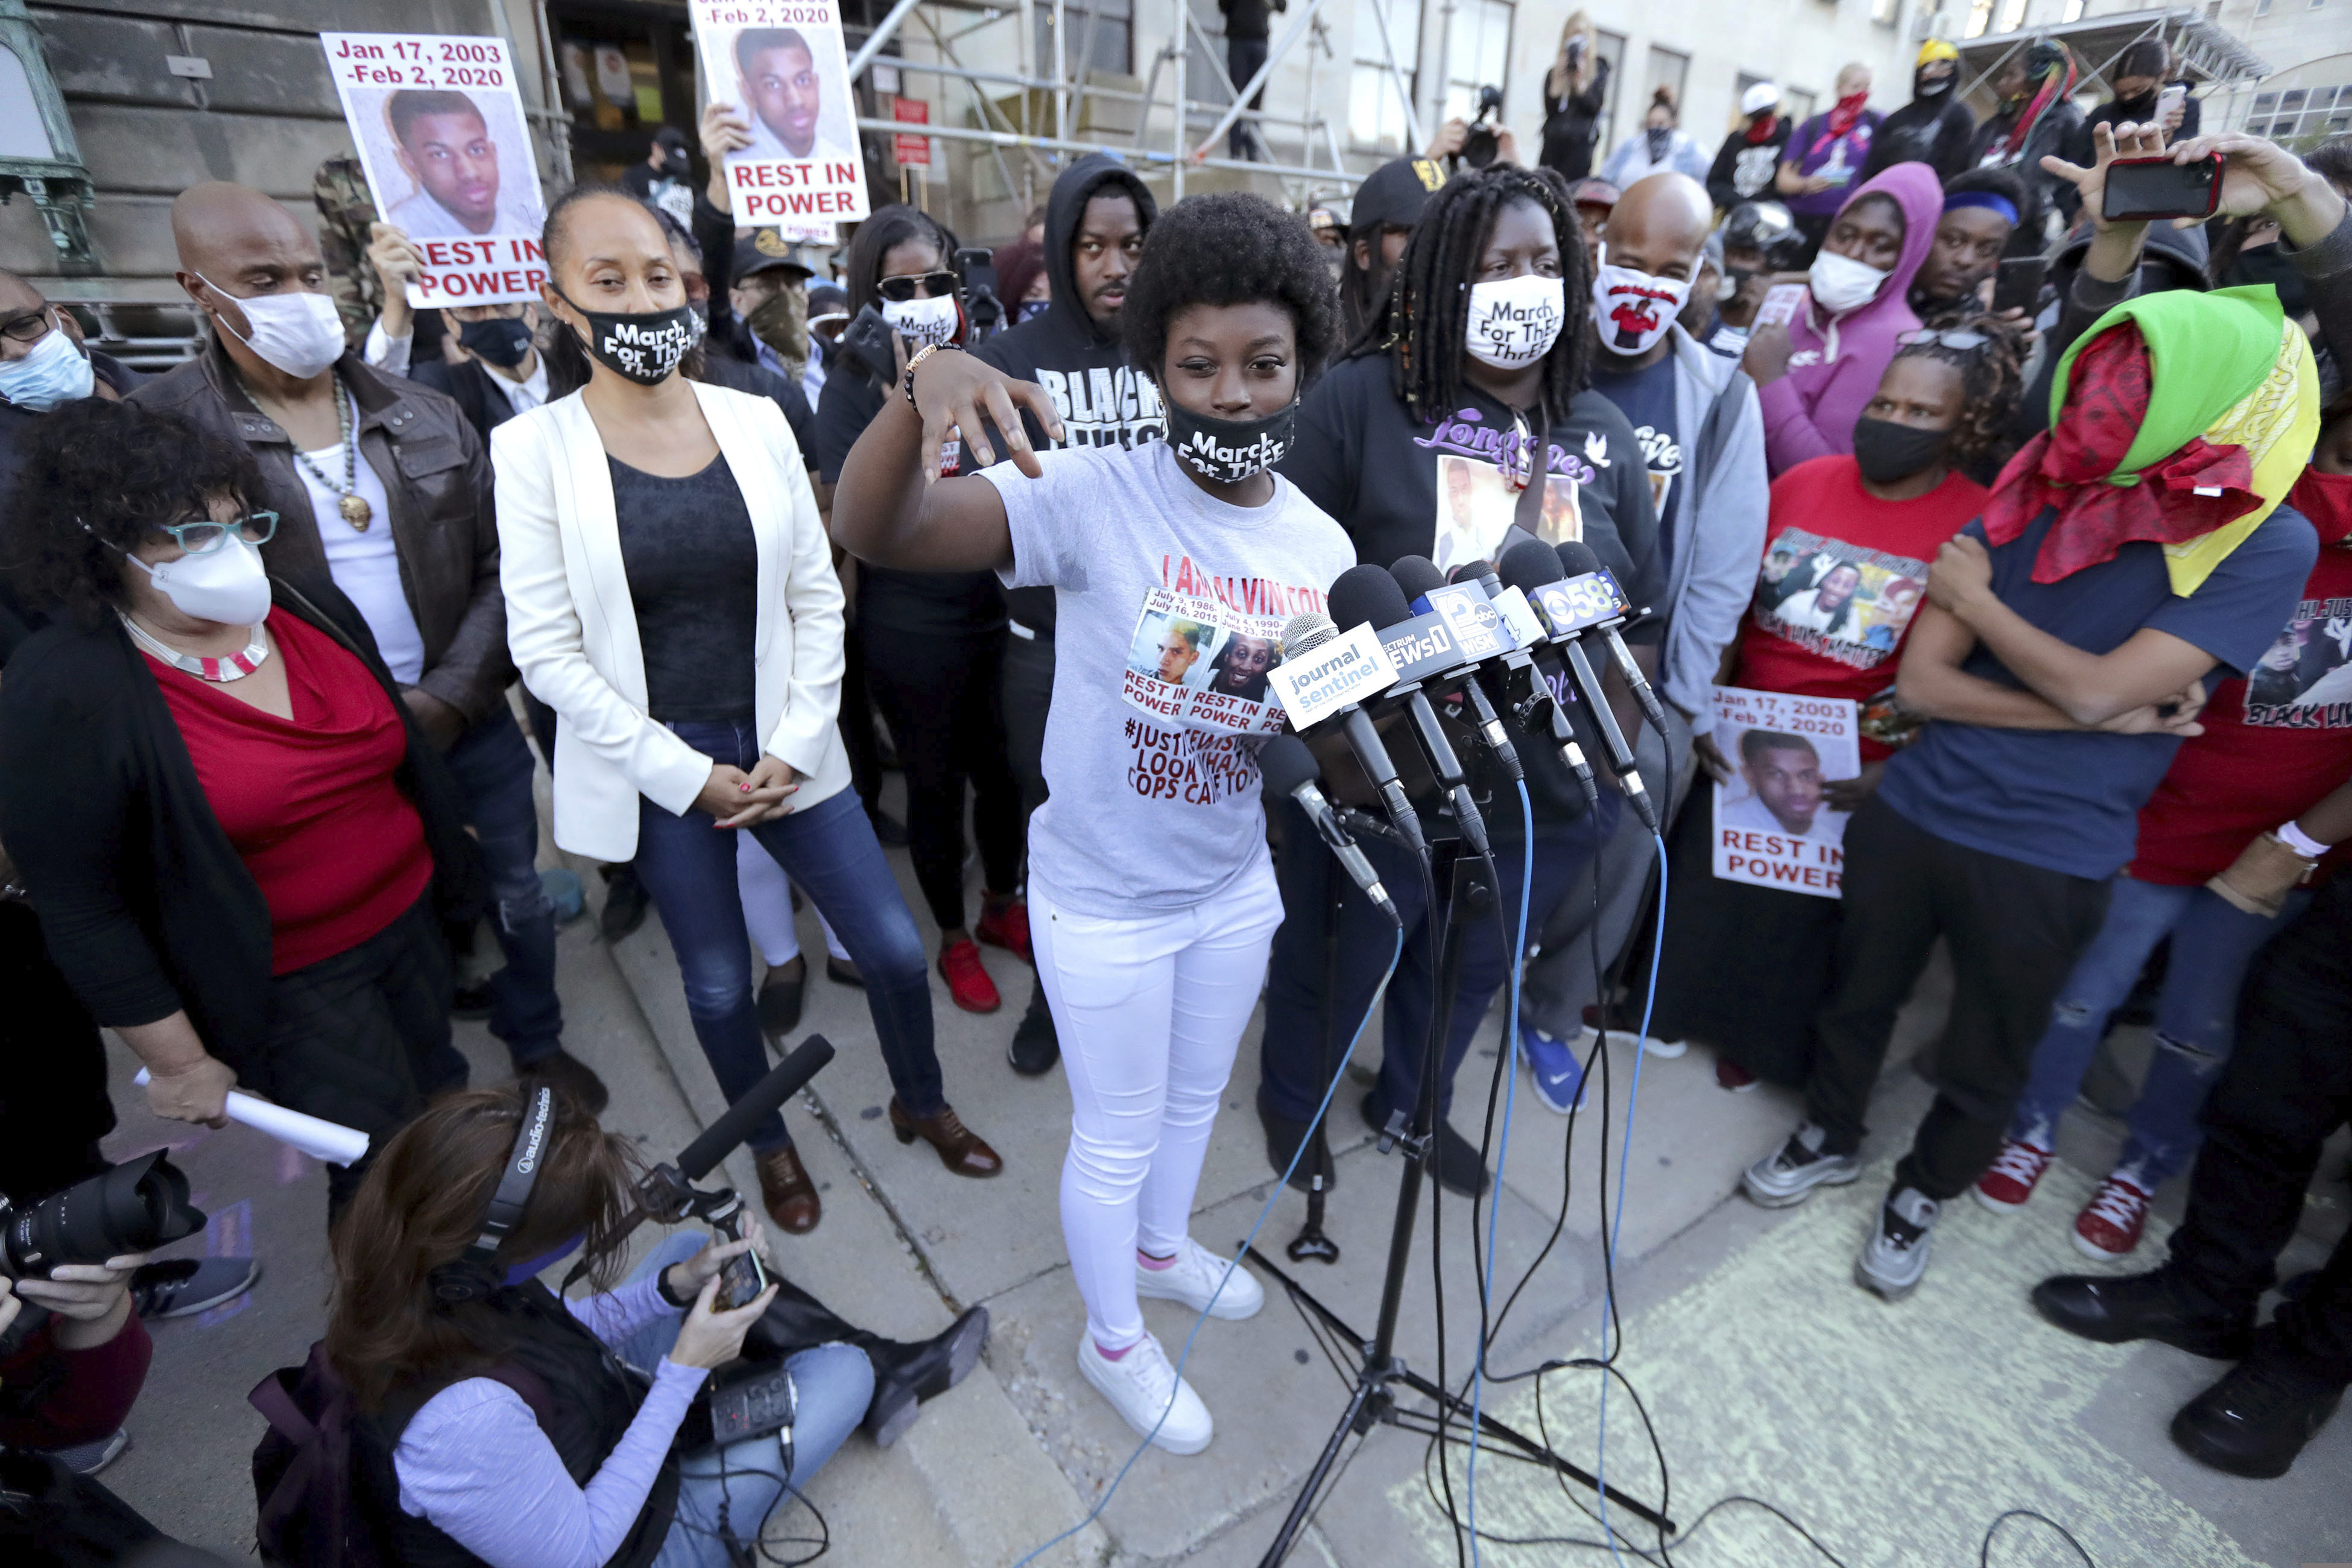 Taleavia Cole, Alvin Cole's sister, speaks to the media outside the Milwaukee County courthouse in Milwaukee on Oct. 7, 2020.